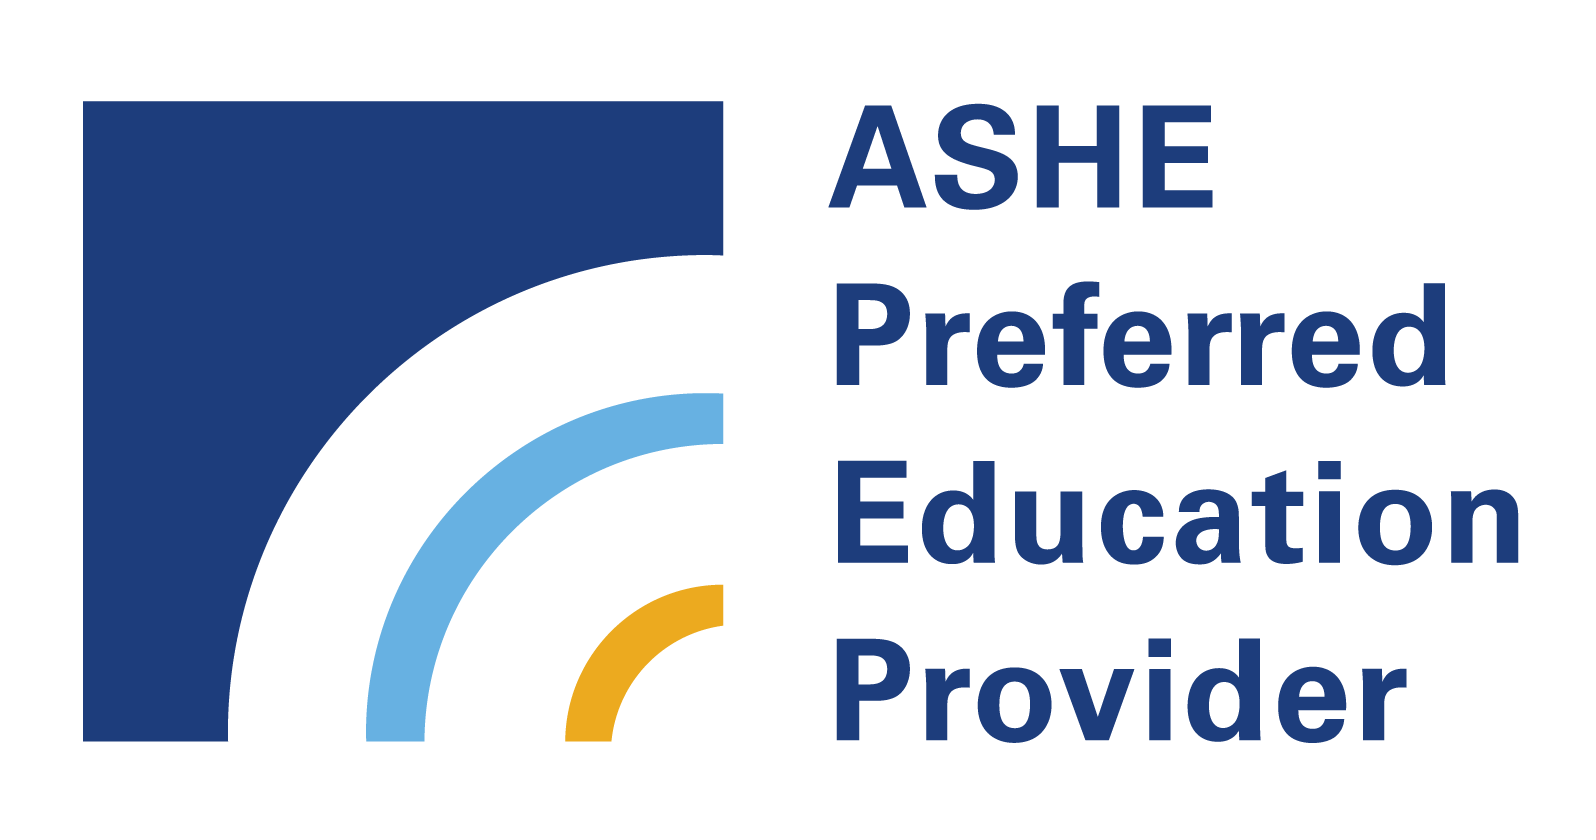 ASHE Preferred Education Provider